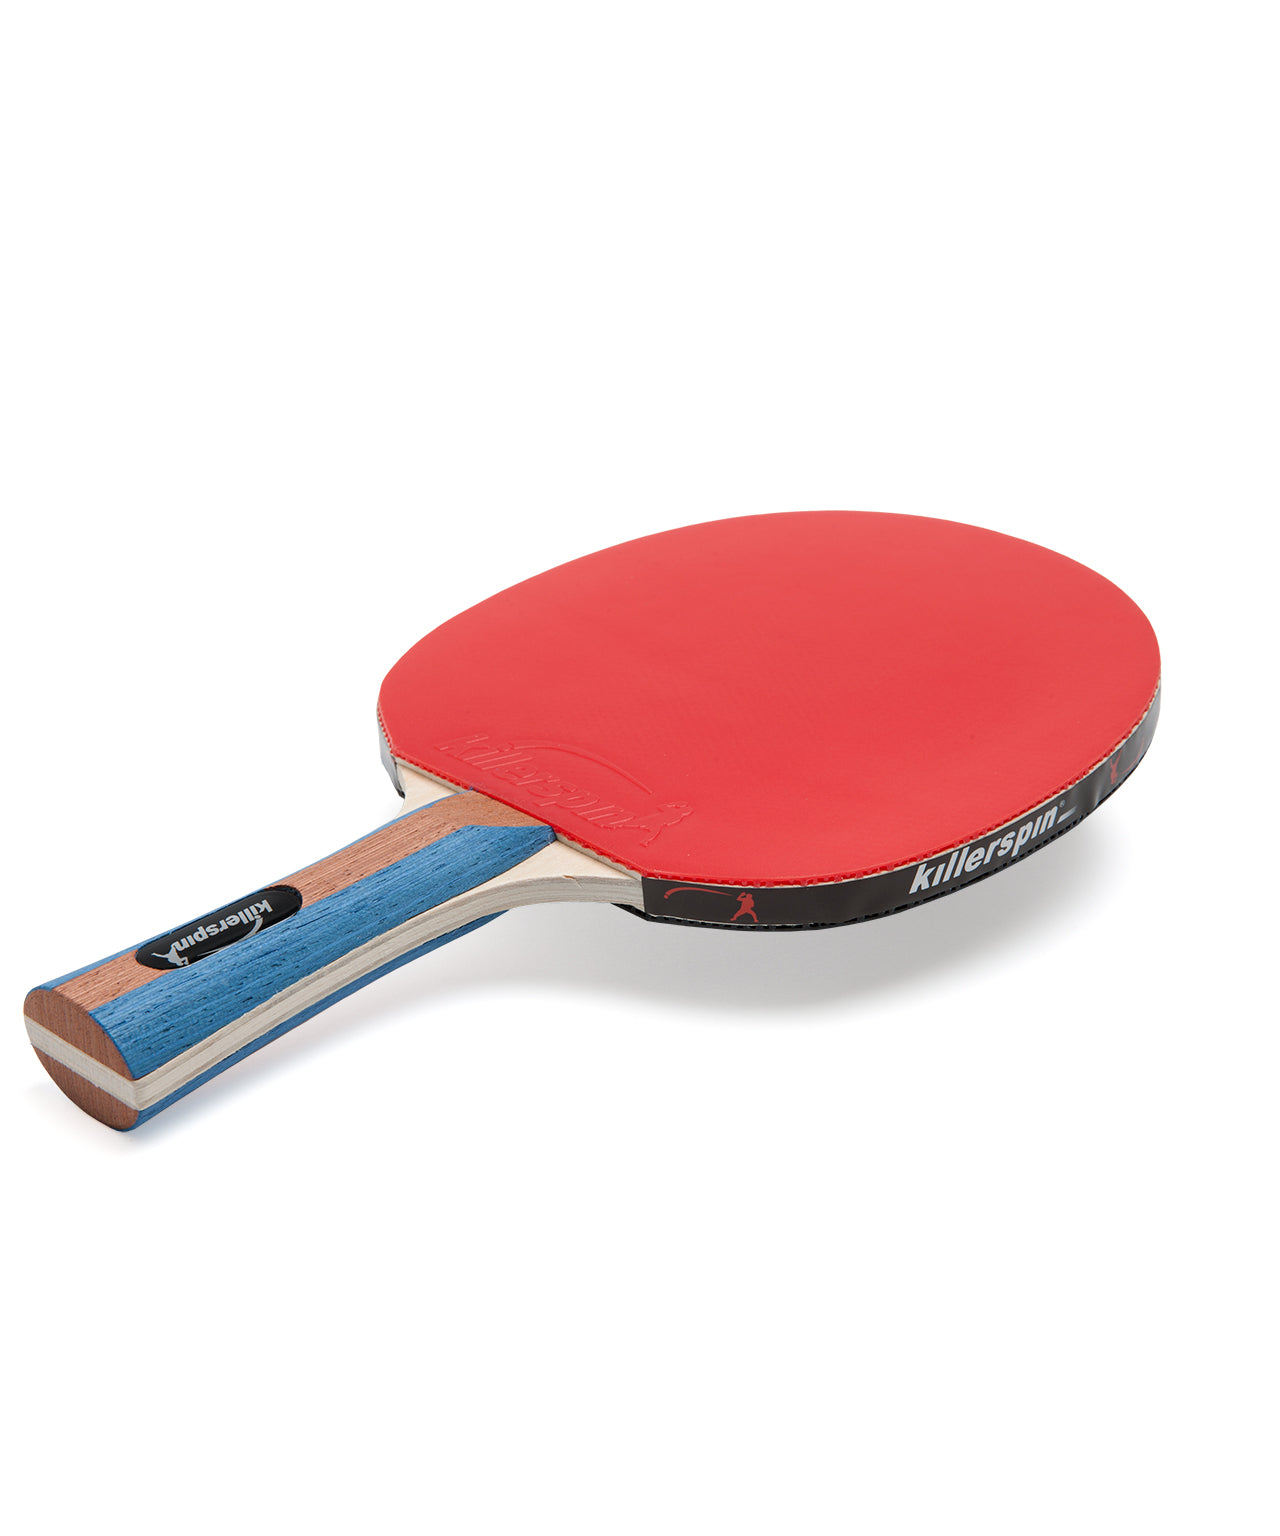 Killerspin Ping Pong Paddle Set JetSet4 - Red Rubber